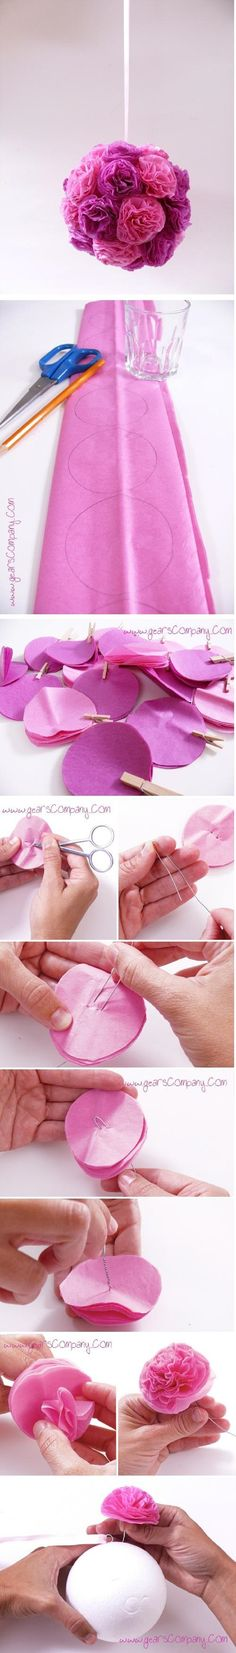 16 Flower-Power DIY Home Decor Projects | GleamItUp